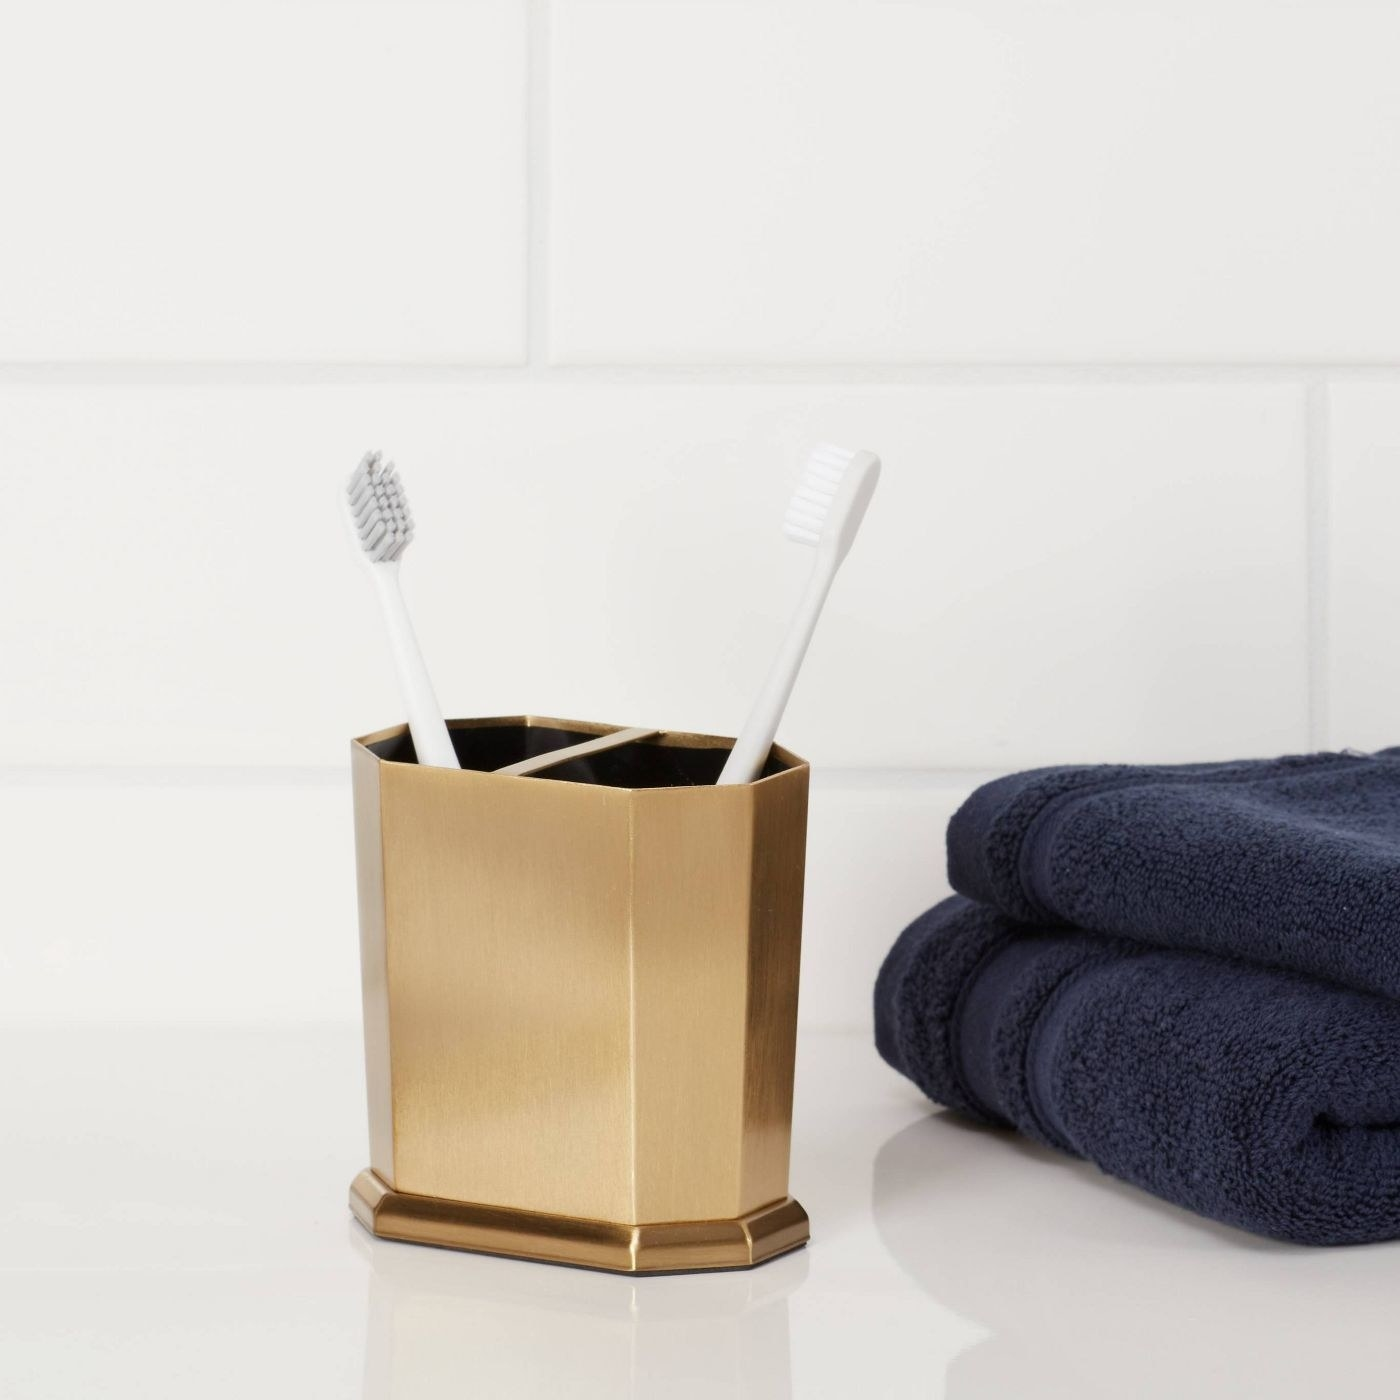 Gold toothbrush holder with white toothbrushes stands beside a navy towel